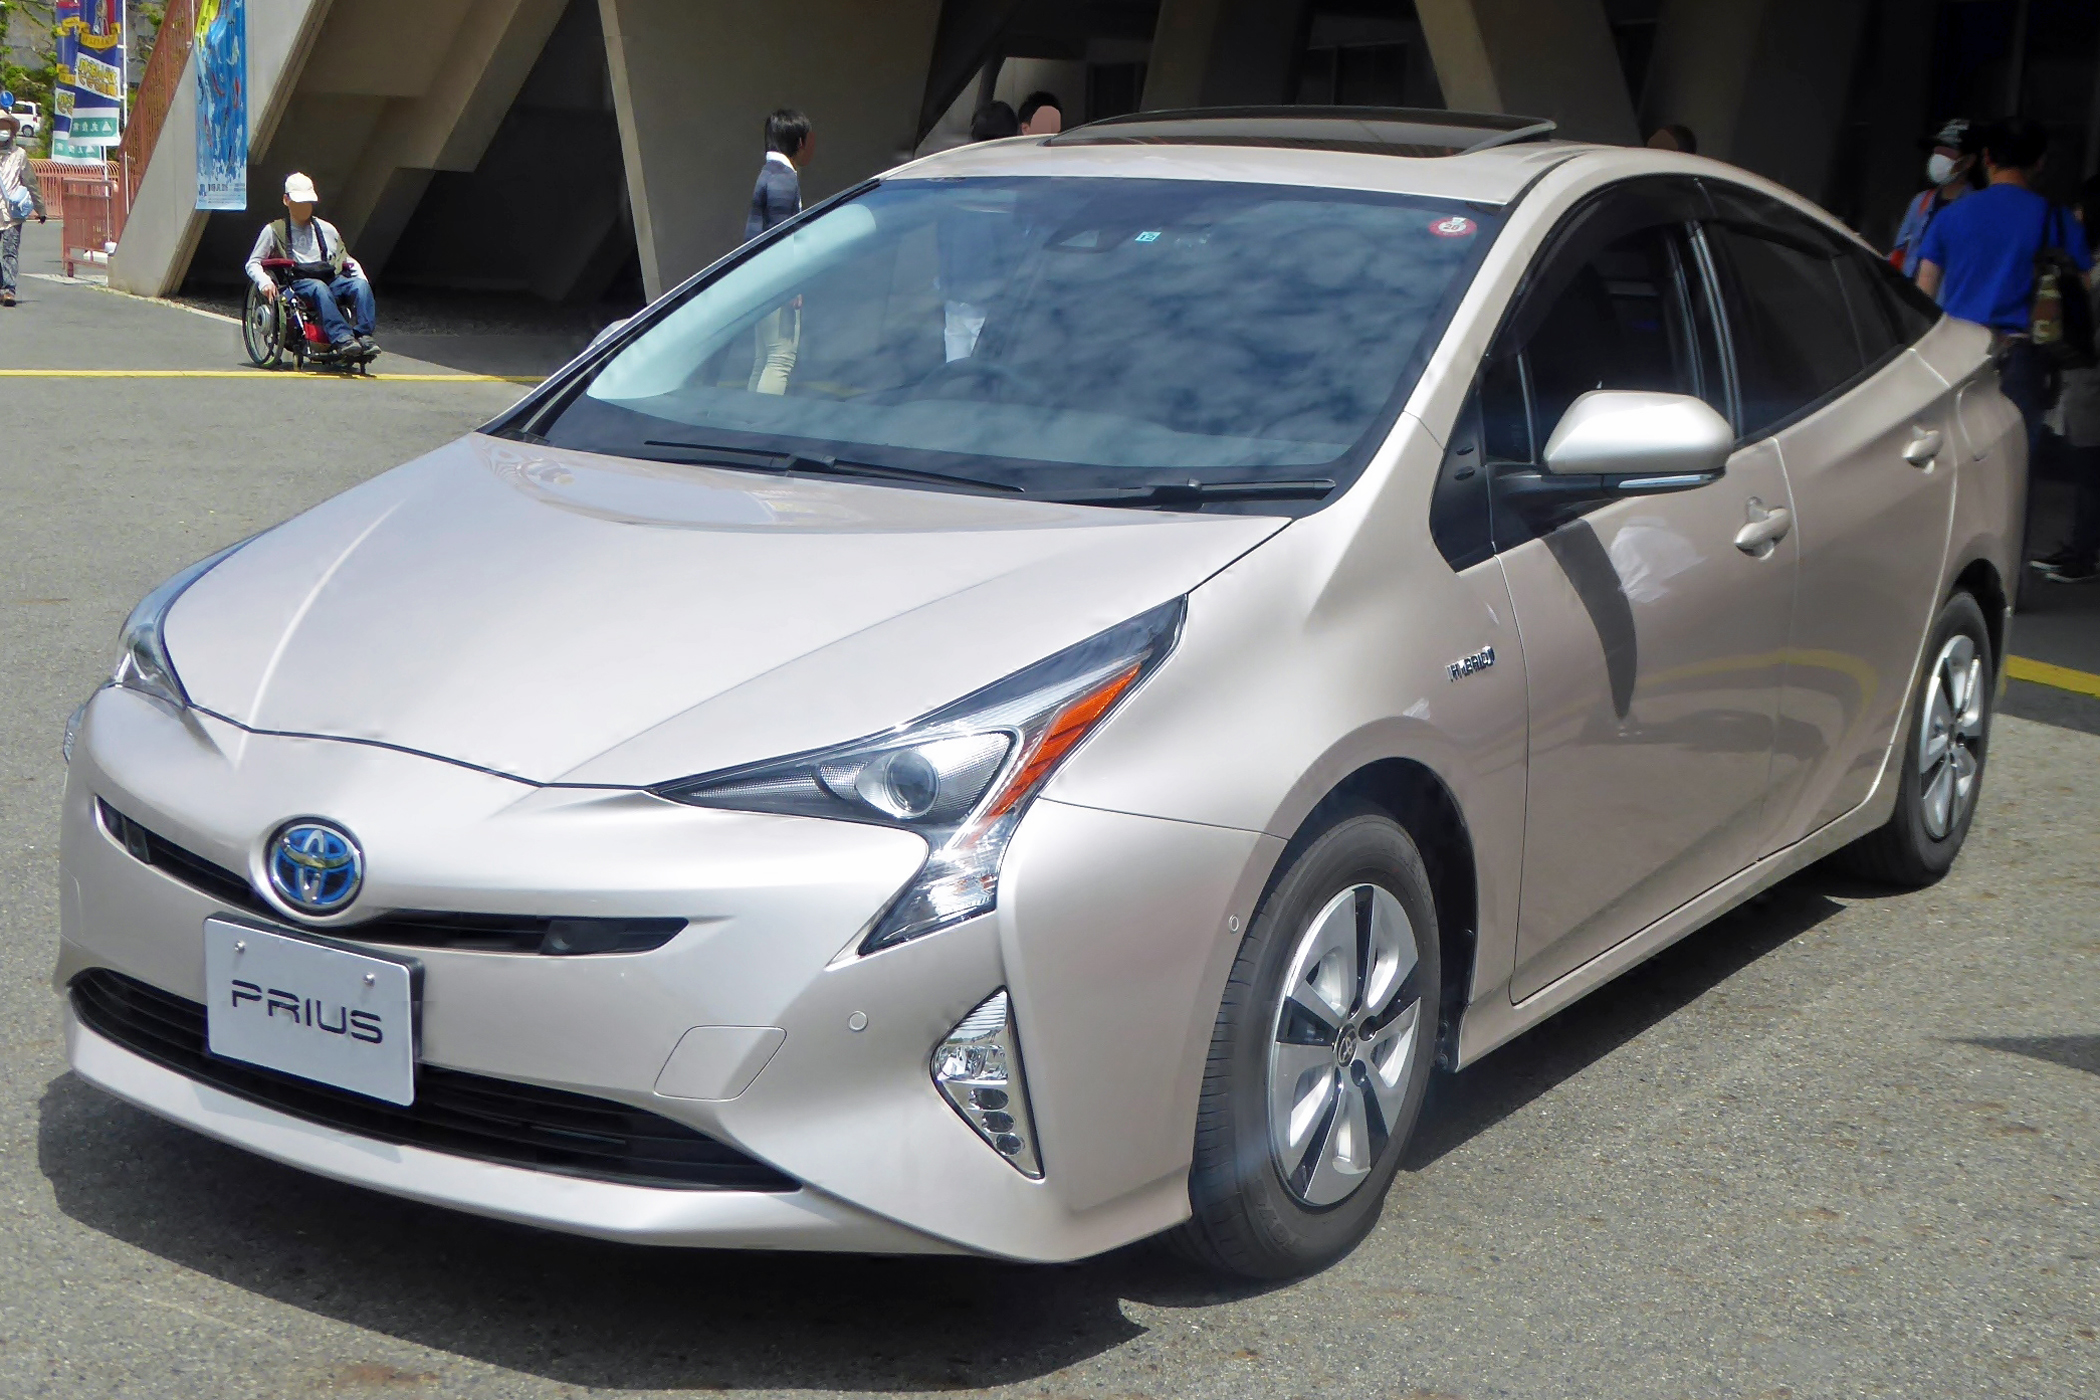 Make/Model Spotlight: Toyota Prius